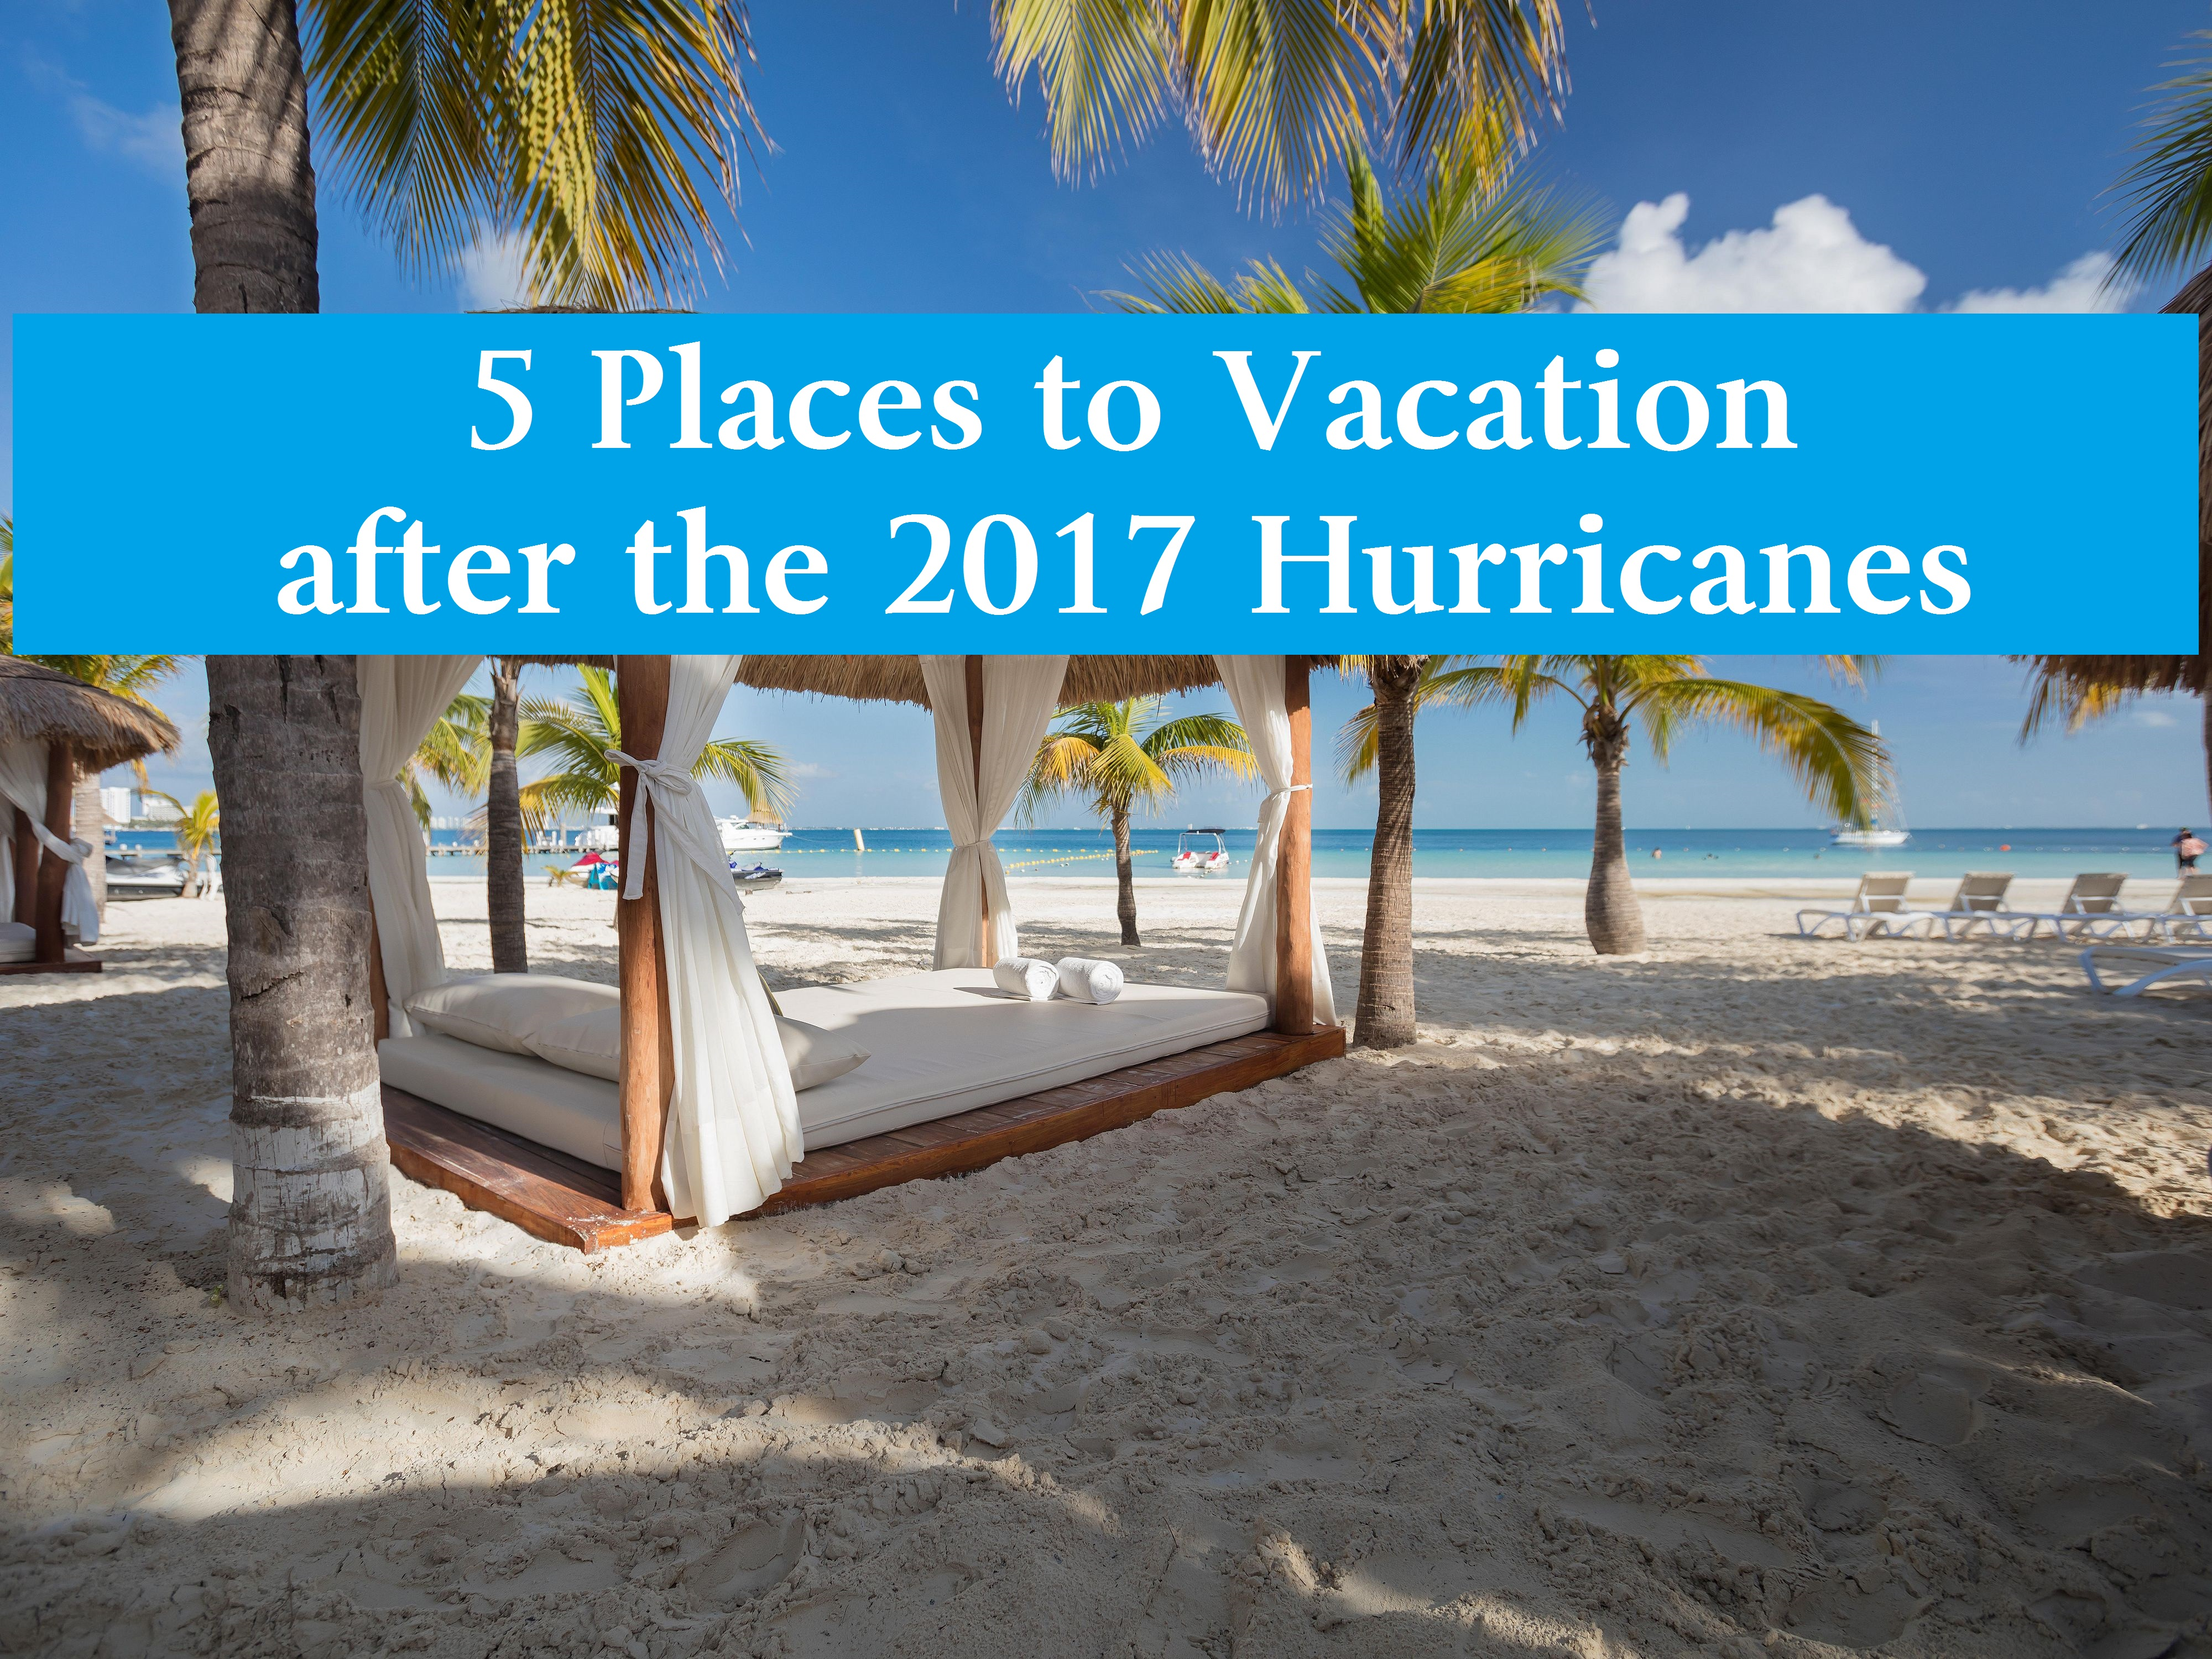 5 Places to Vacation after the 2017 Hurricanes - Blacks Who Travel